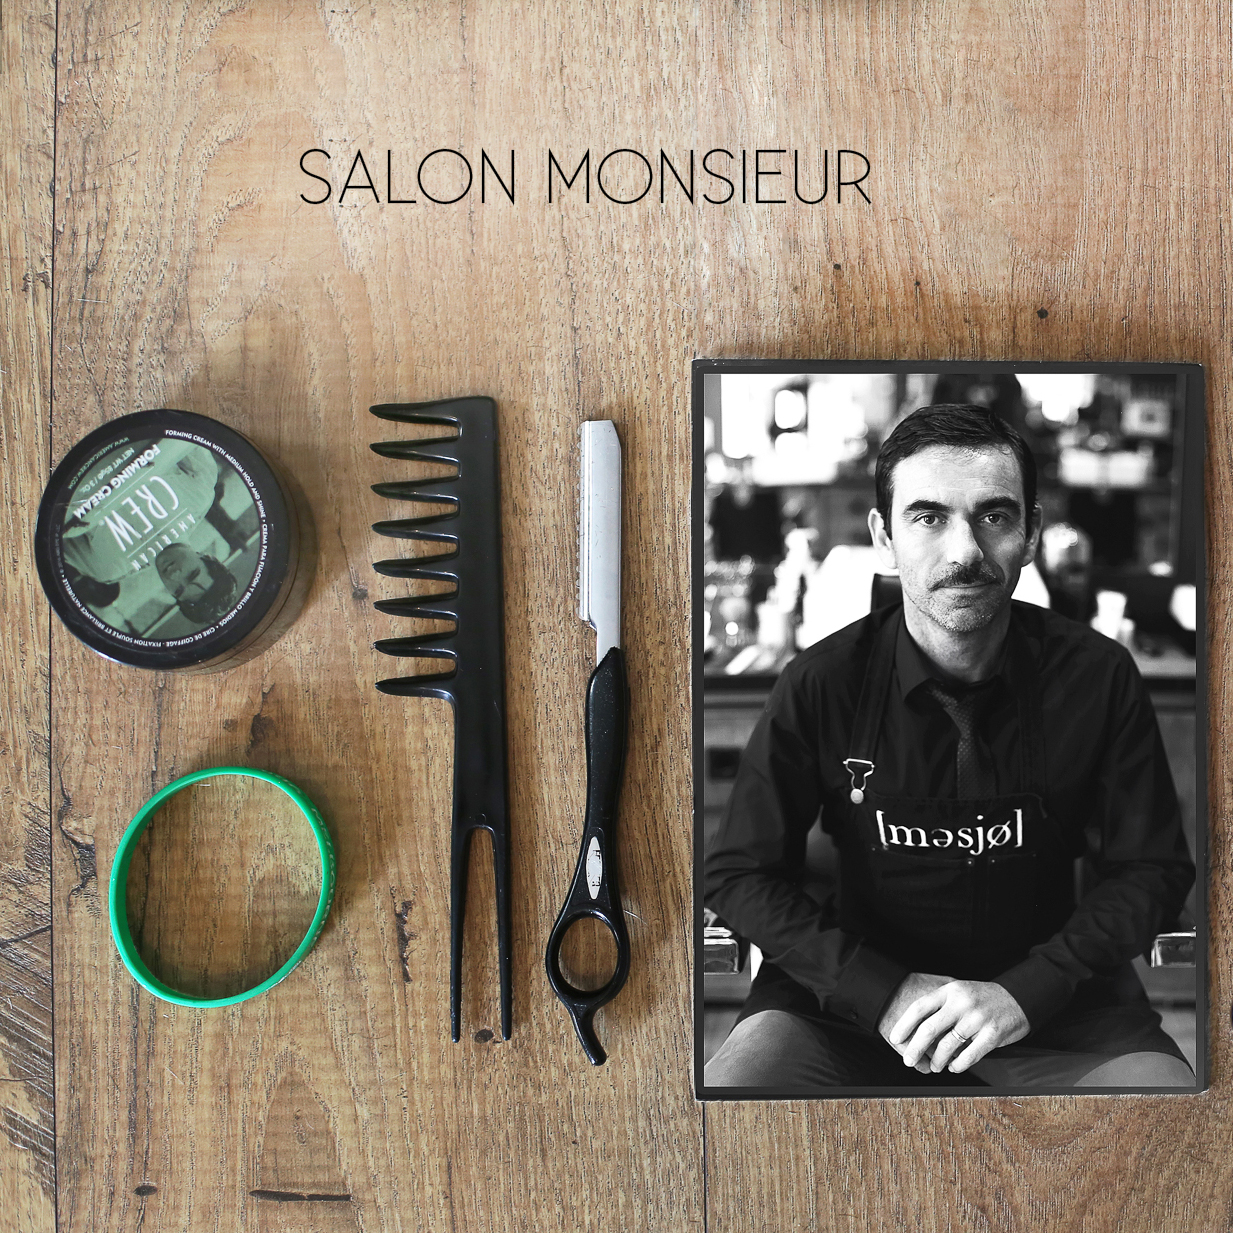 Photo corporate entreprise - salon homme monsieur - bretagne